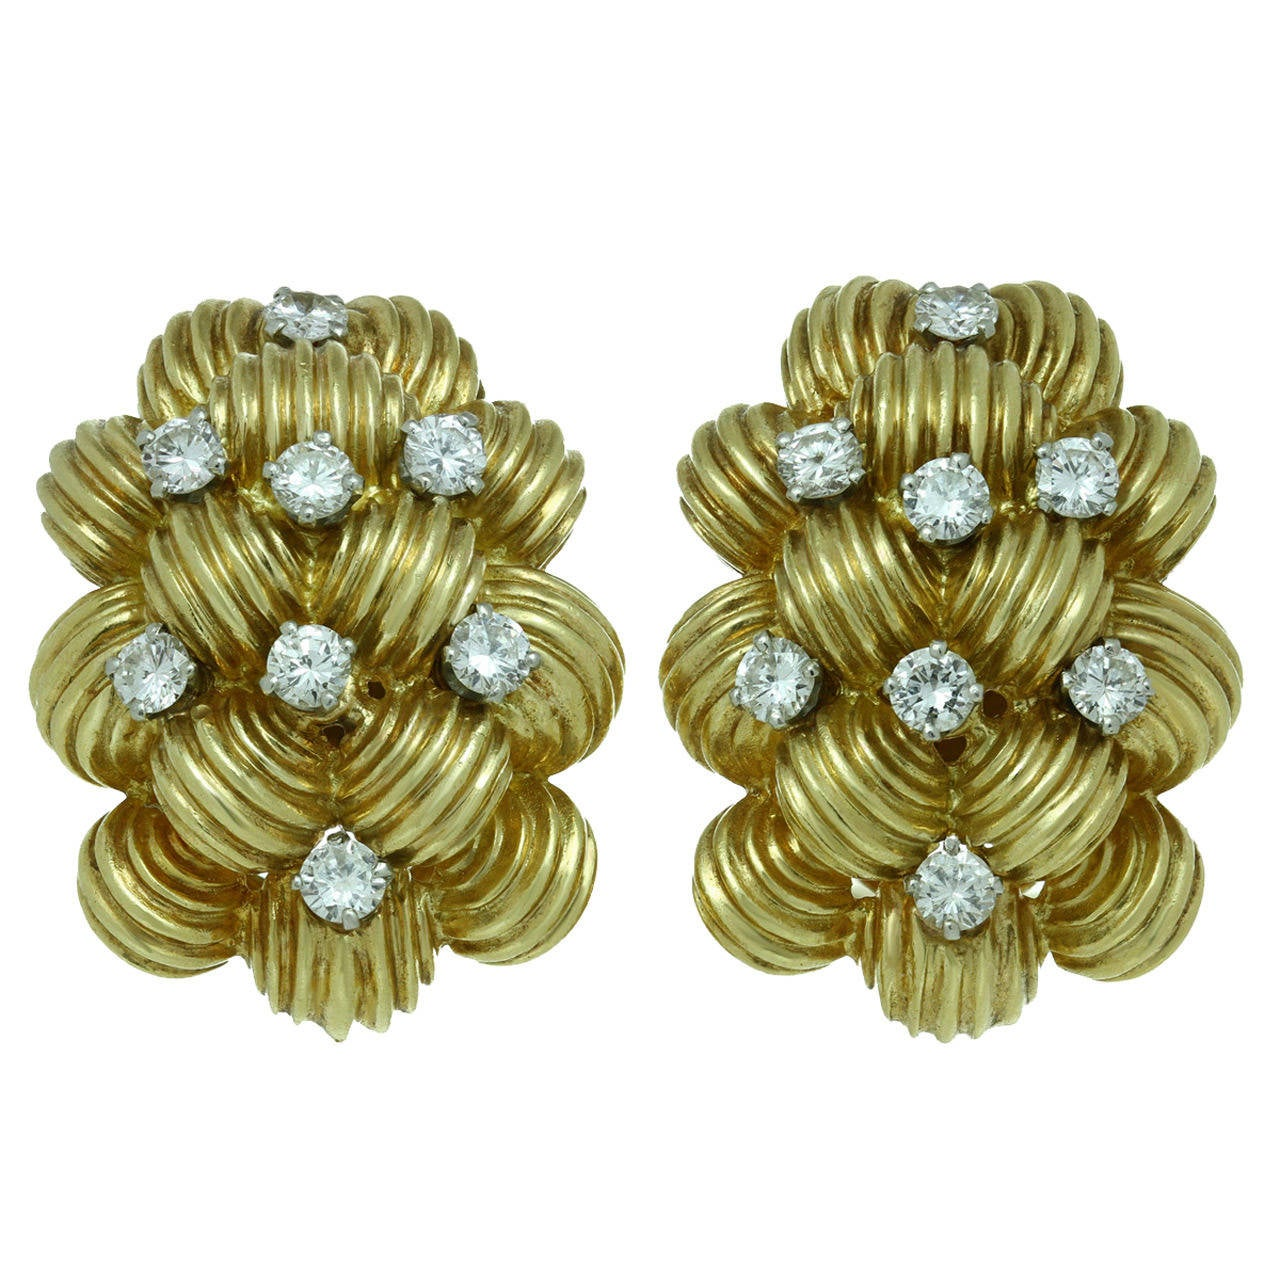 1960s Van Cleef & Arpels Diamond Gold Clip-on Earrings